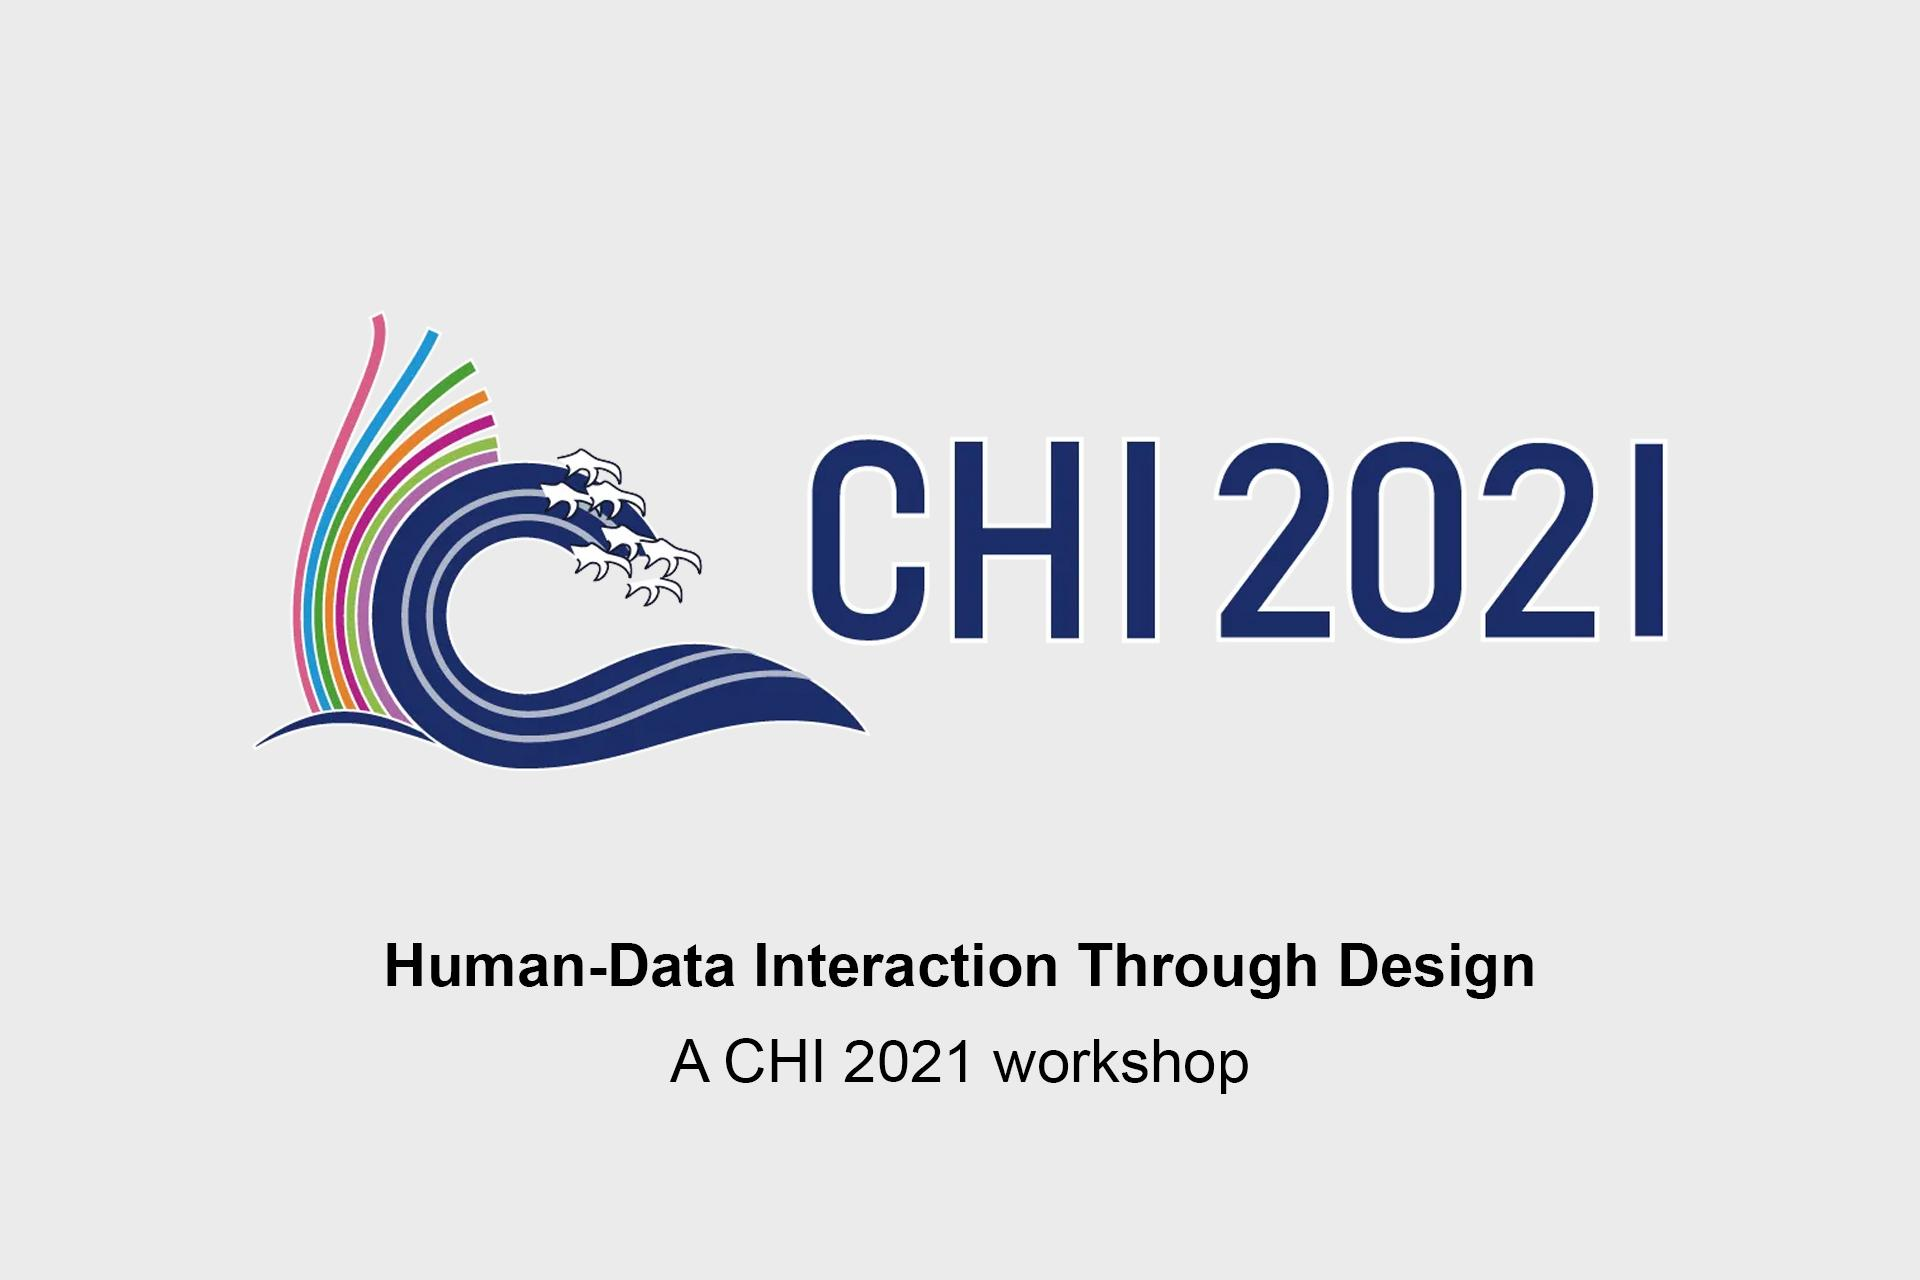 Human-Data Interaction Through Design A CHI 2021 workshop